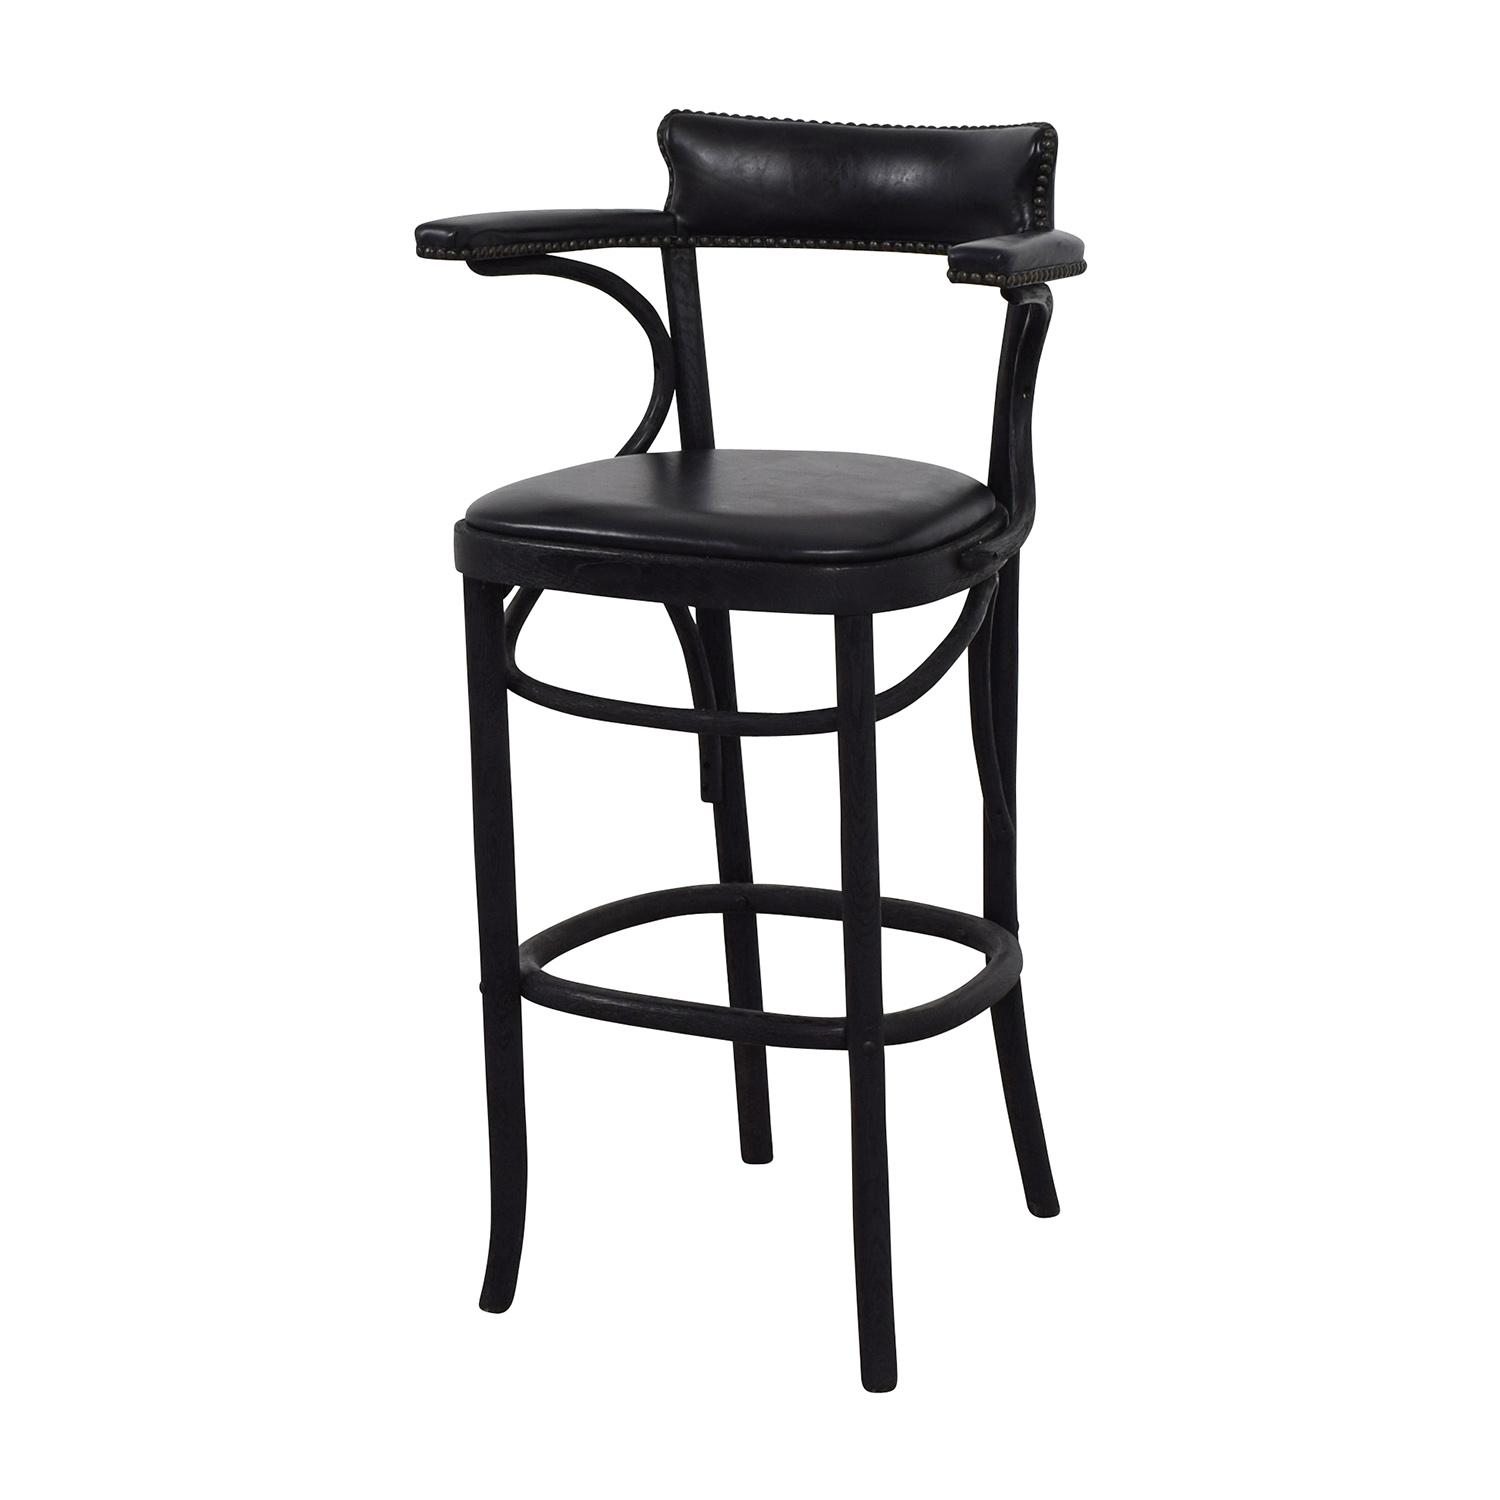 Restoration Hardware Restoration Hardware Vienna Cafe Leather Stool price